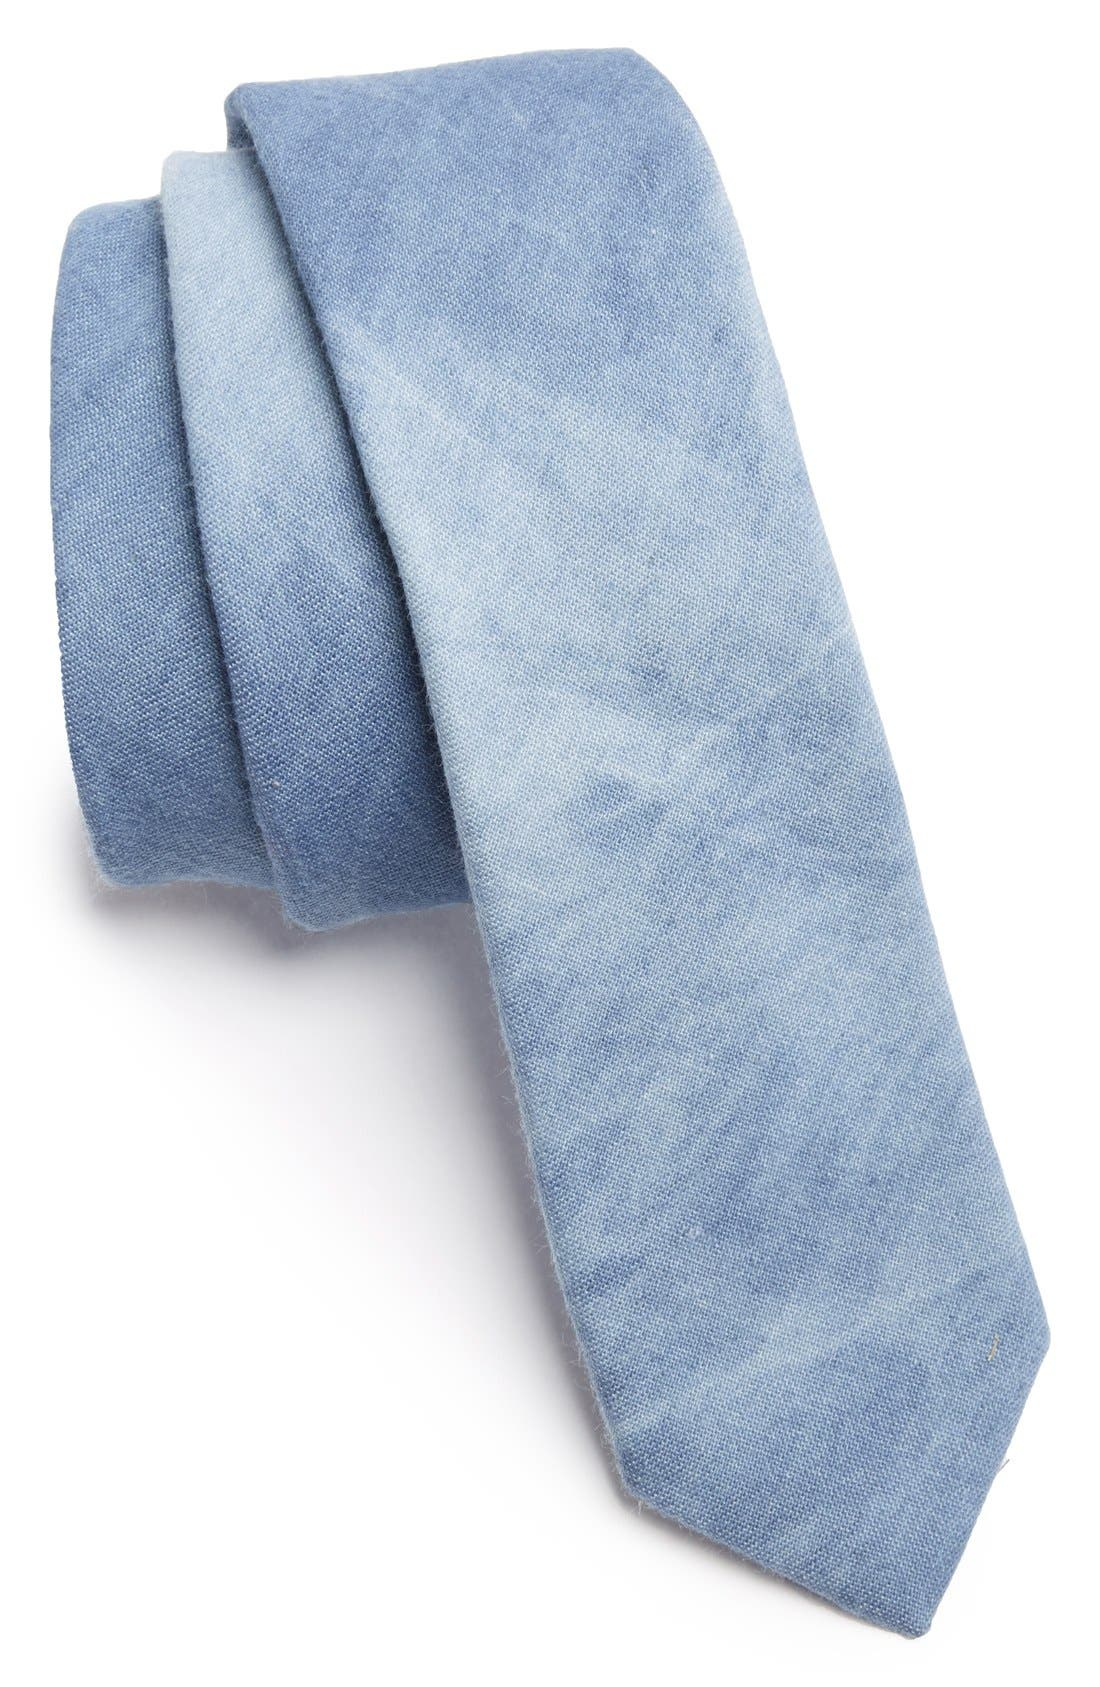 Main Image - C2 by Calibrate Woven Cotton Tie (Big Boys)